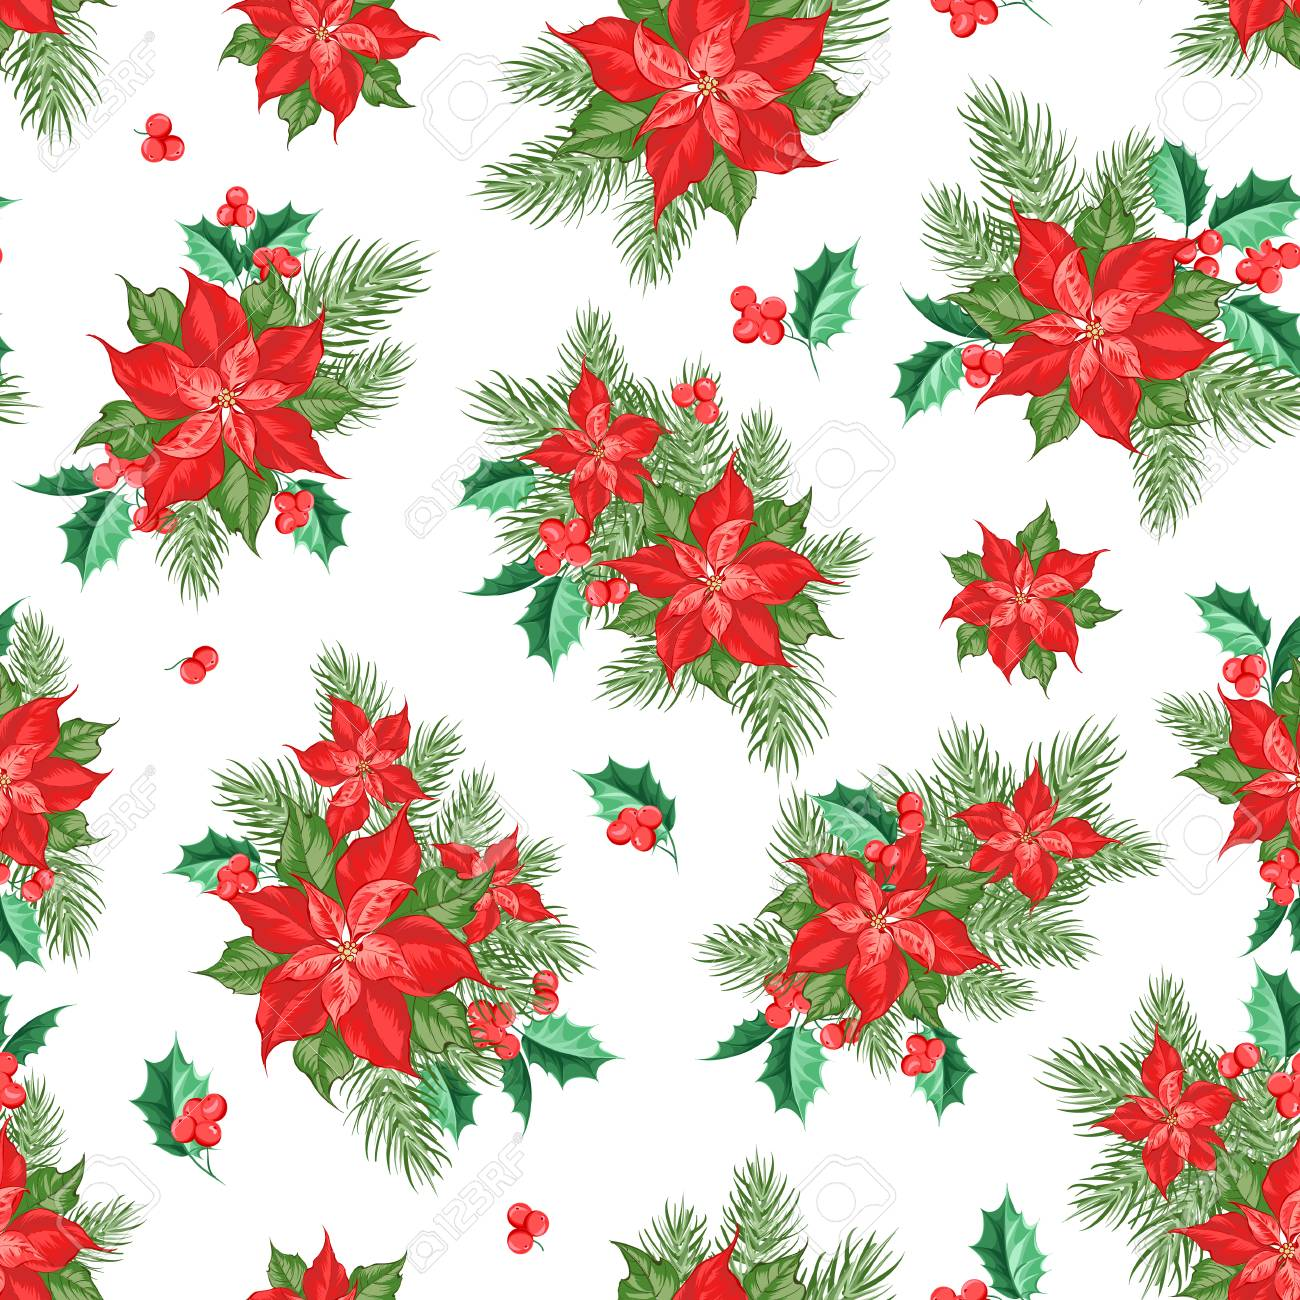 Red Poinsettia Flower Pattern Seamless Holiday Background With Royalty Free Cliparts Vectors And Stock Illustration Image 128488494